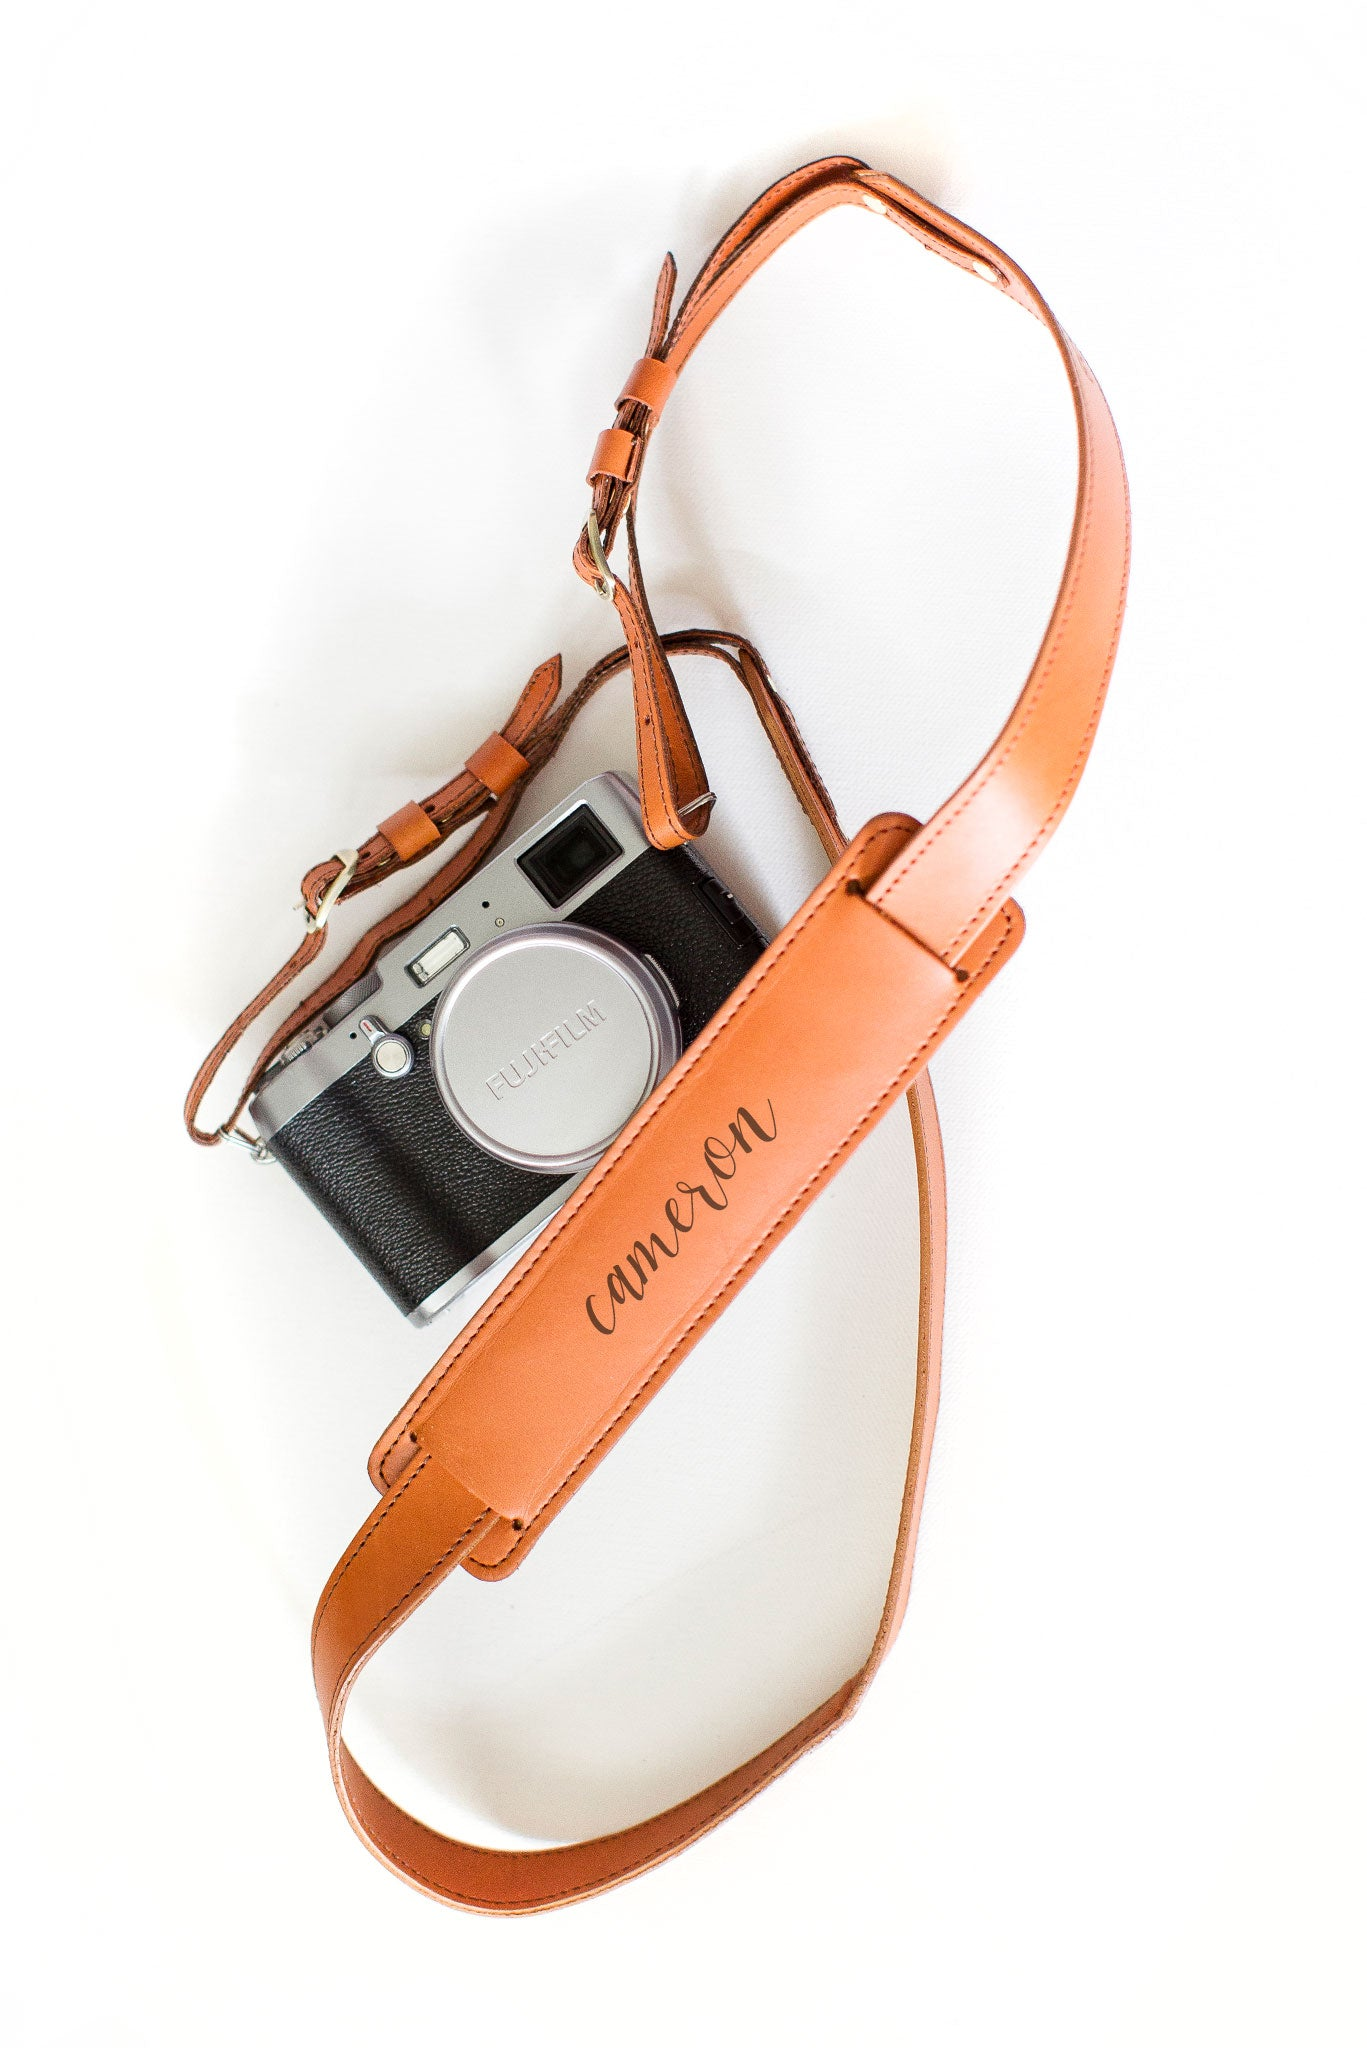 FOTO | The Skinny Cognac for Her - a cognac brown genuine all-leather skinny camera strap that can be personalized with a monogram or business logo, making this leather camera strap the perfect personalized gift.